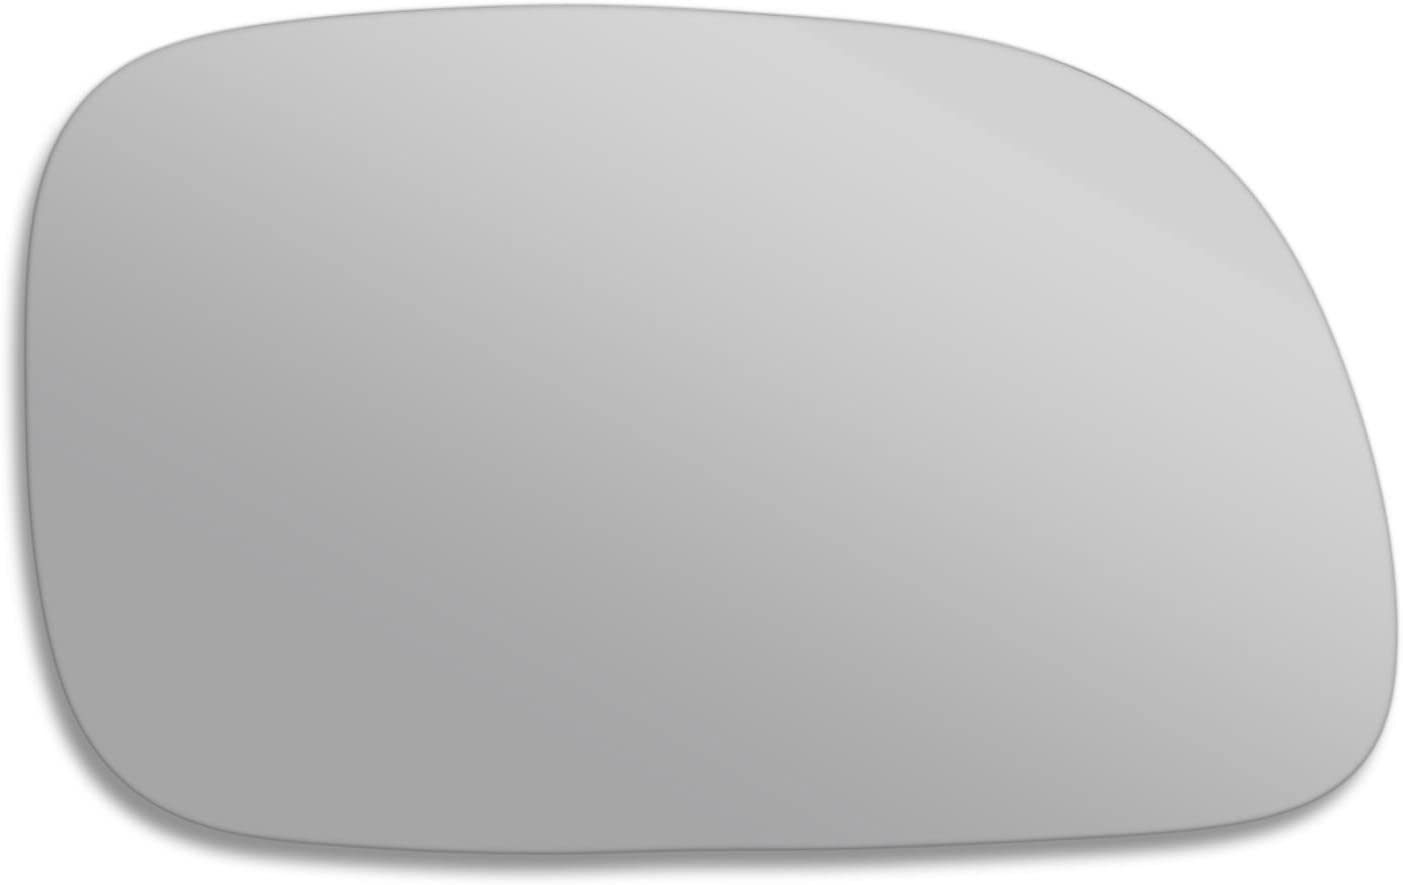 ChGra Right side wing mirror glass Real glass,door stick on mirror replacement Driver side quick fix silver #ChGr-96//07-R/_c